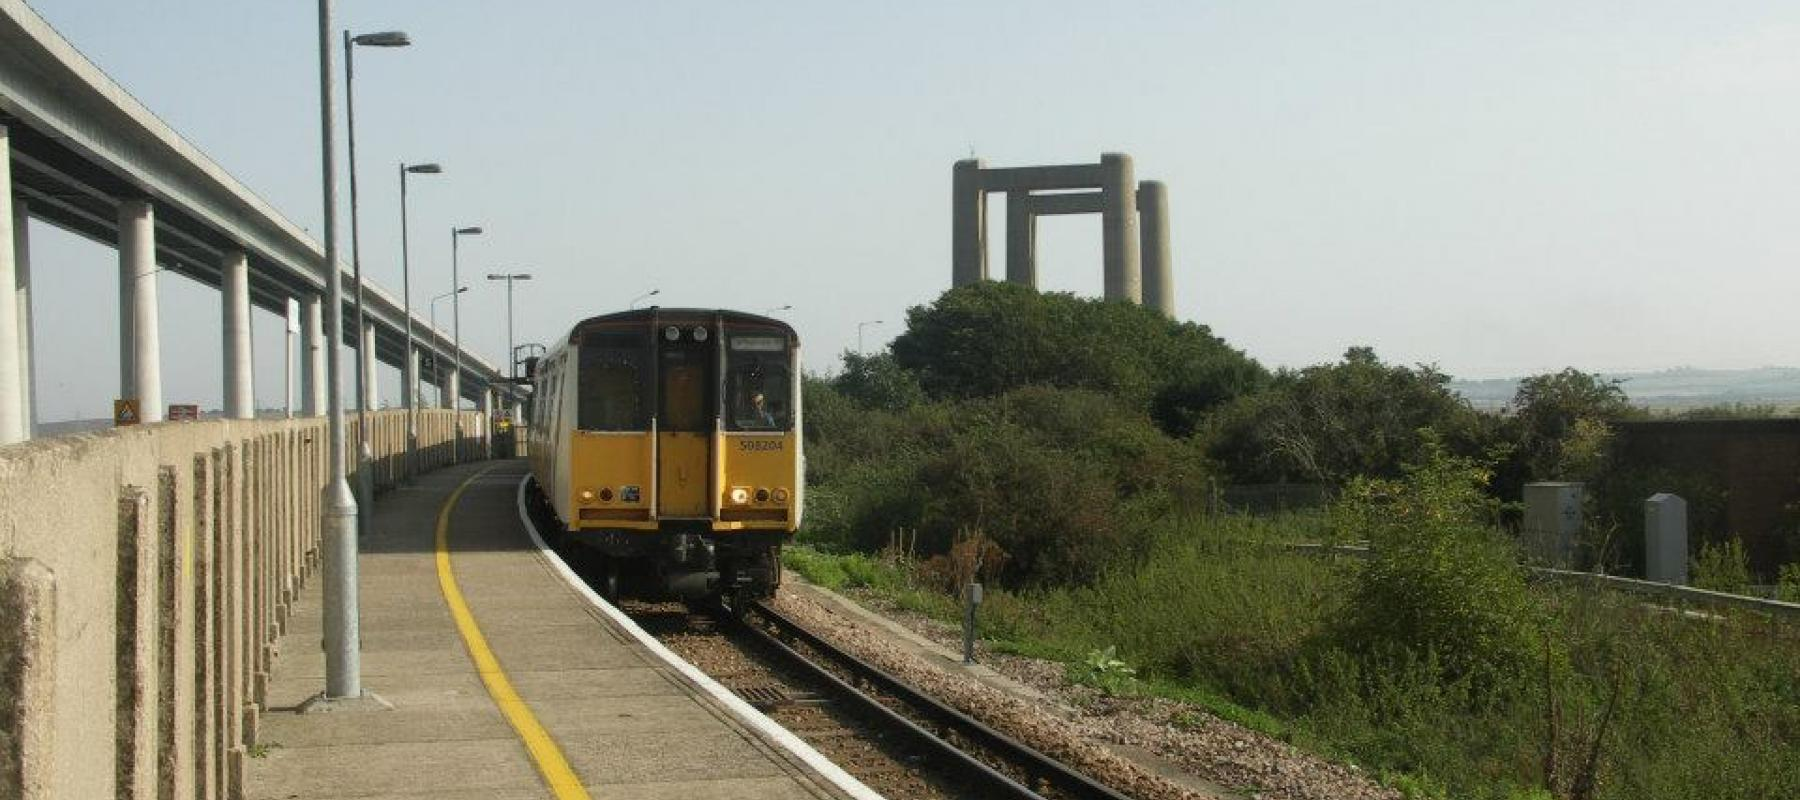 Swale Rail with Sheppey Crossing in background. South East UK.